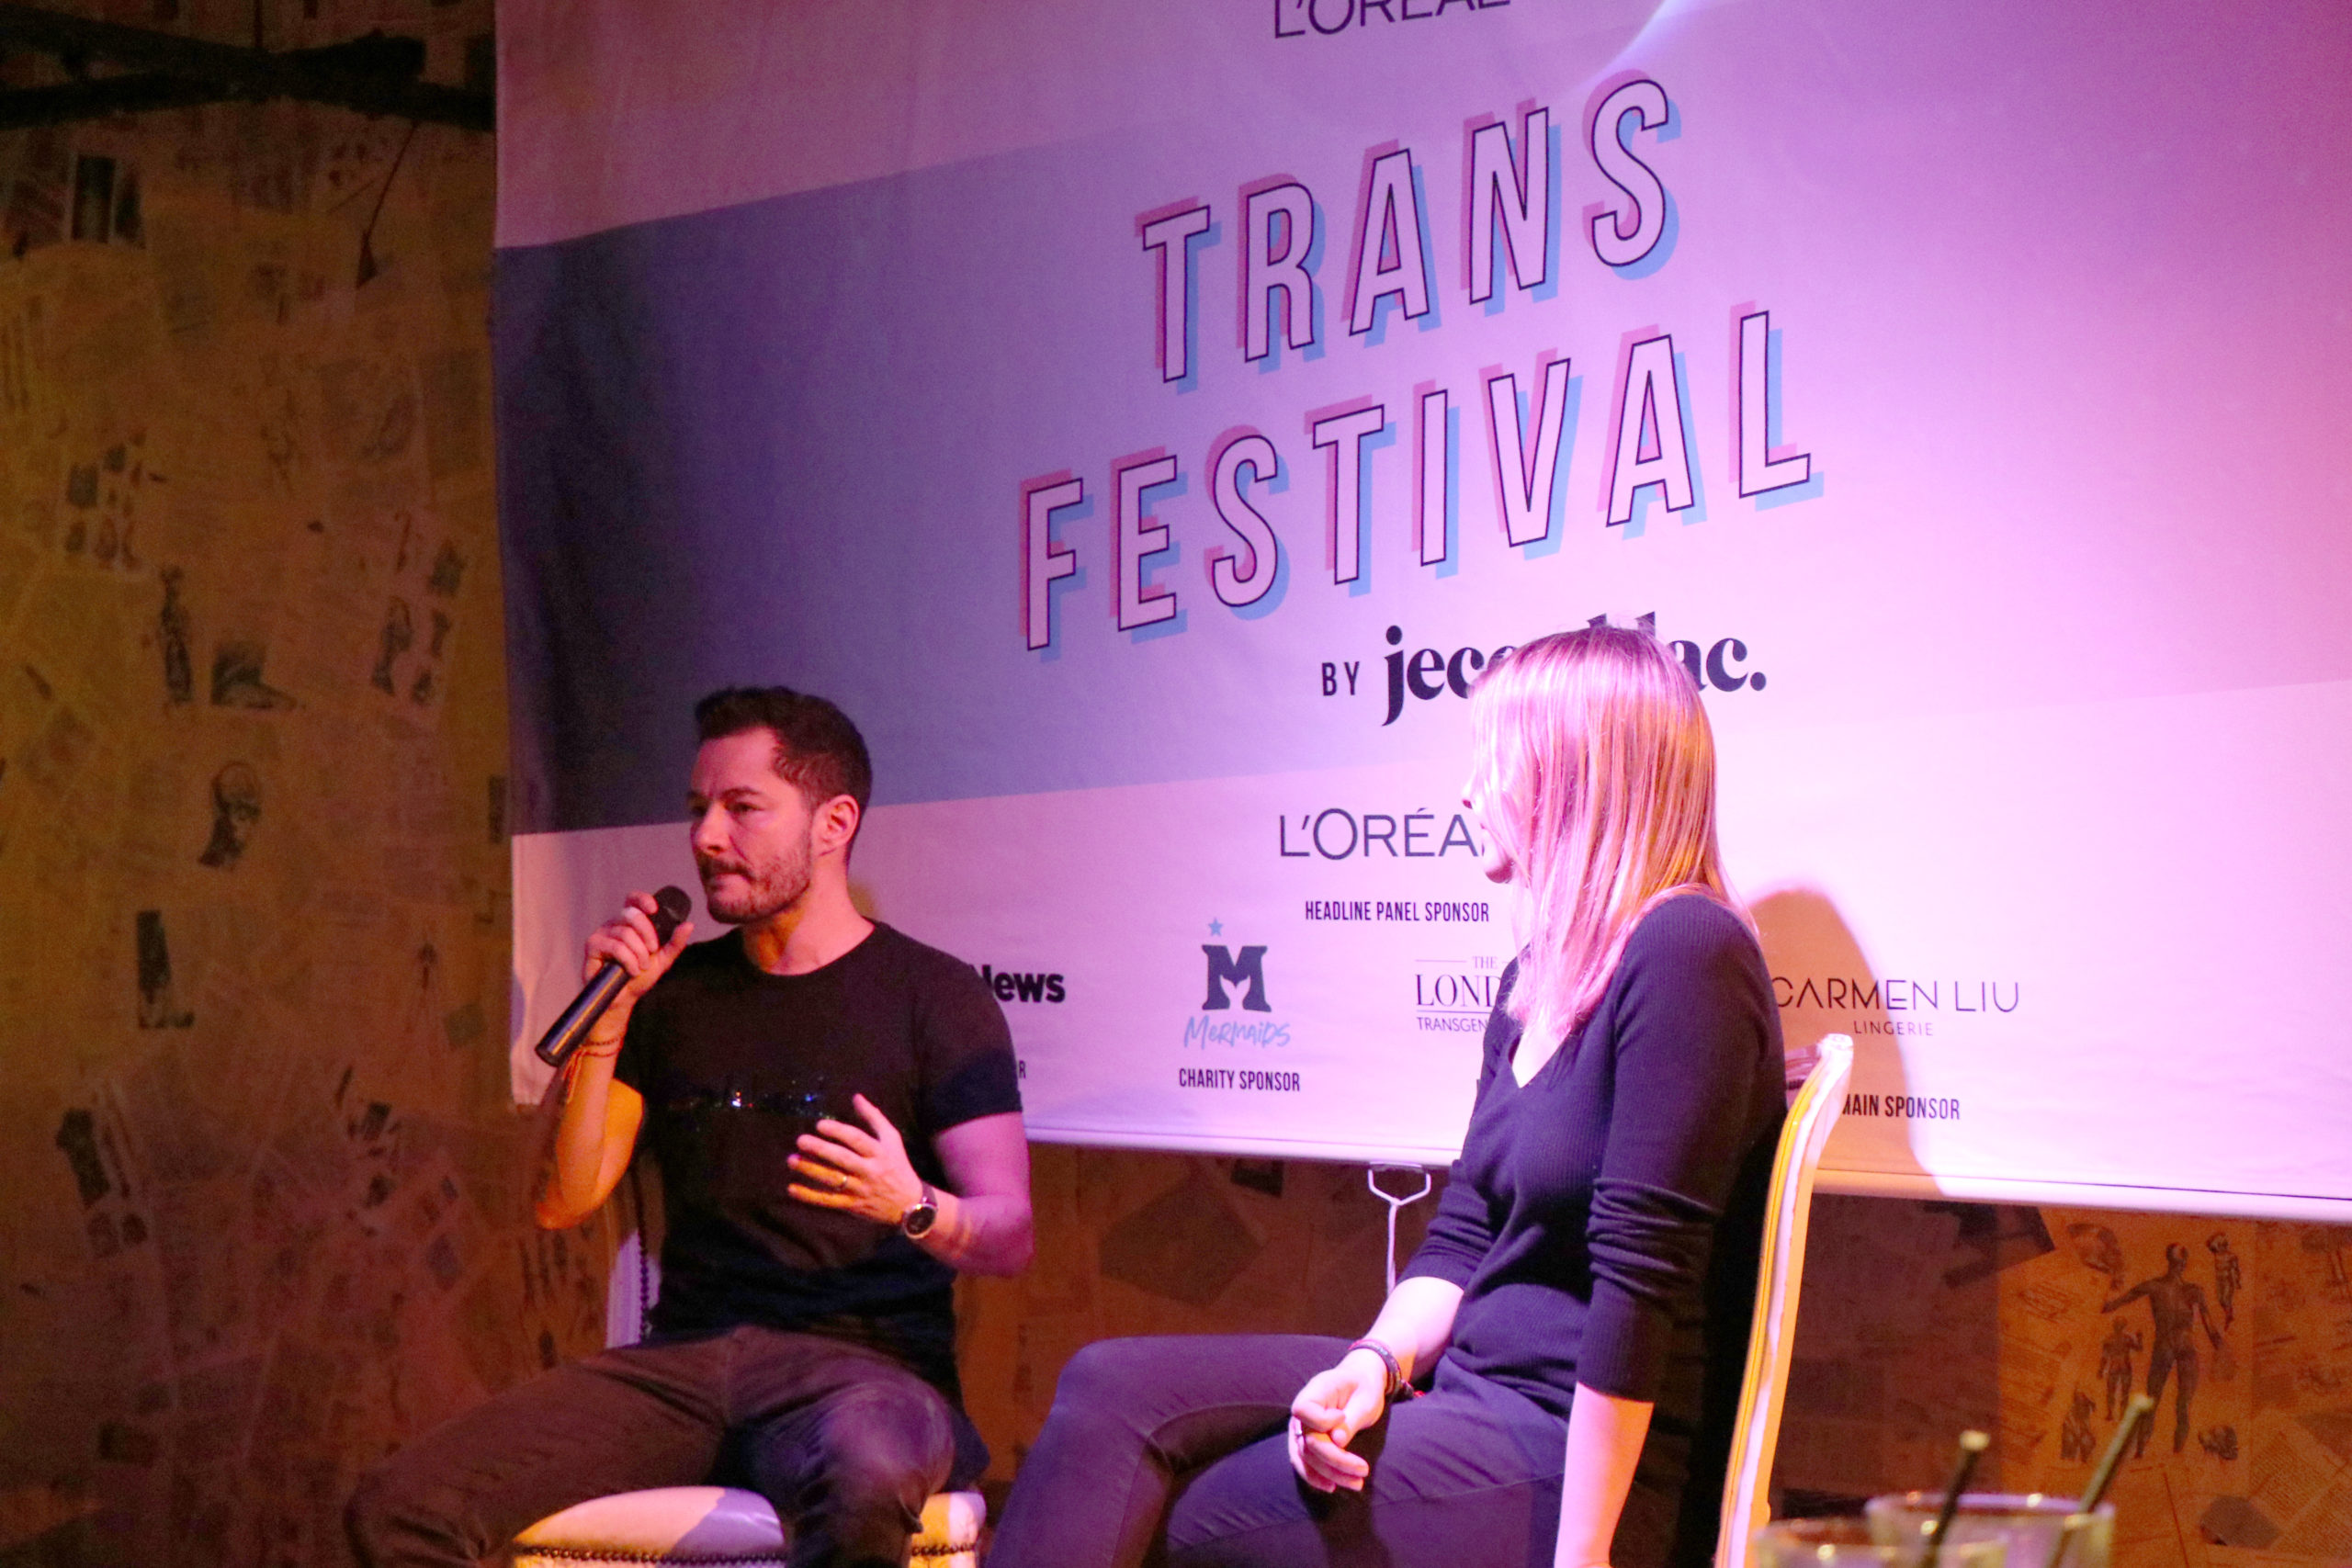 This is why the UK's first-ever Trans Festival was so crucially important